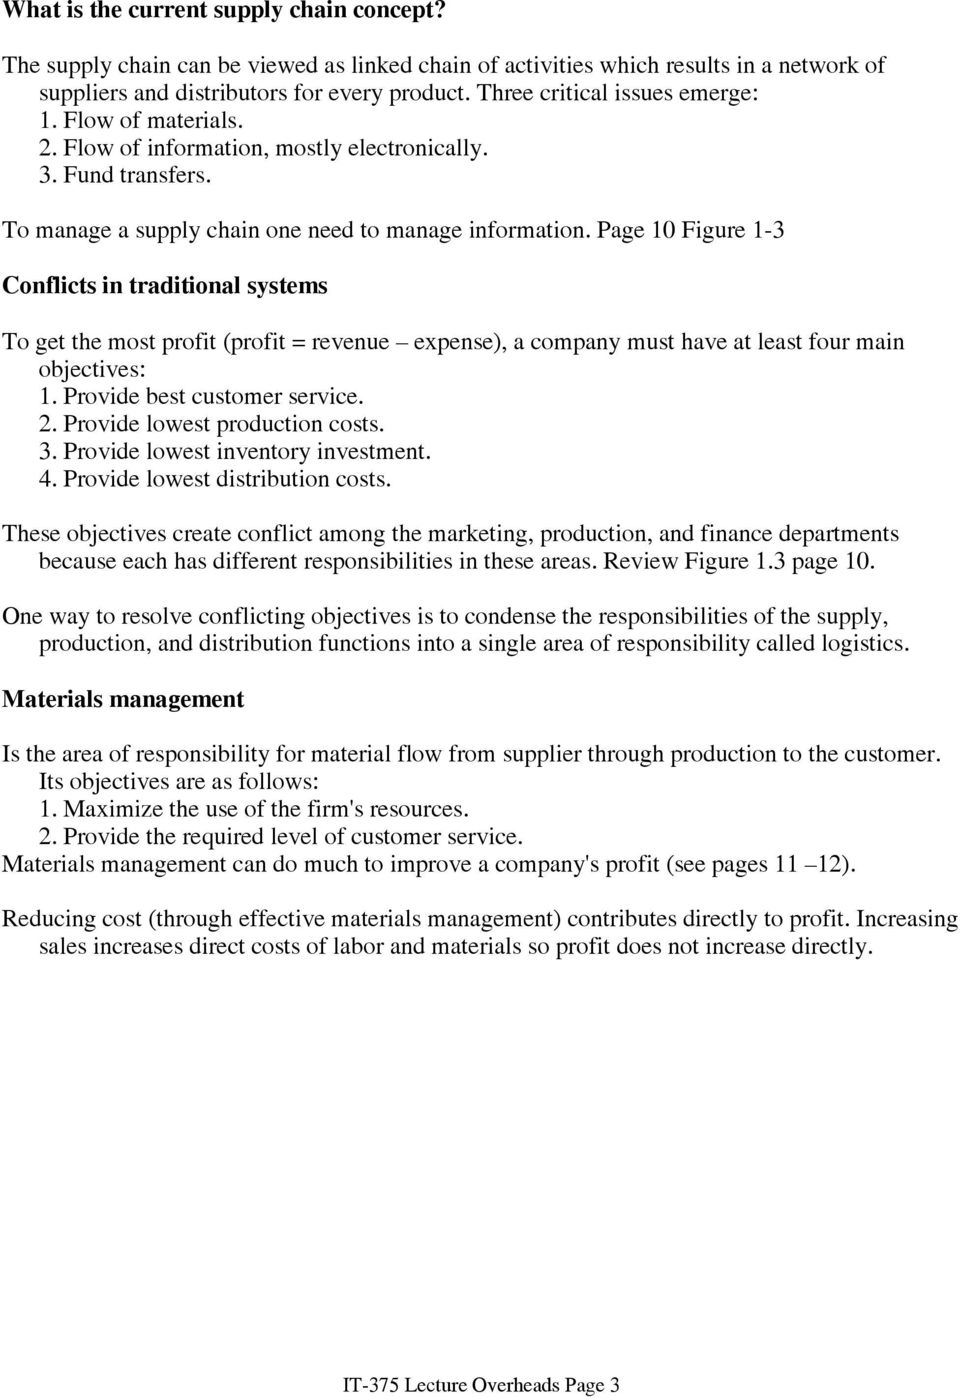 Page 10 Figure 1-3 Conflicts in traditional systems To get the most profit (profit = revenue expense), a company must have at least four main objectives: 1. Provide best customer service. 2.